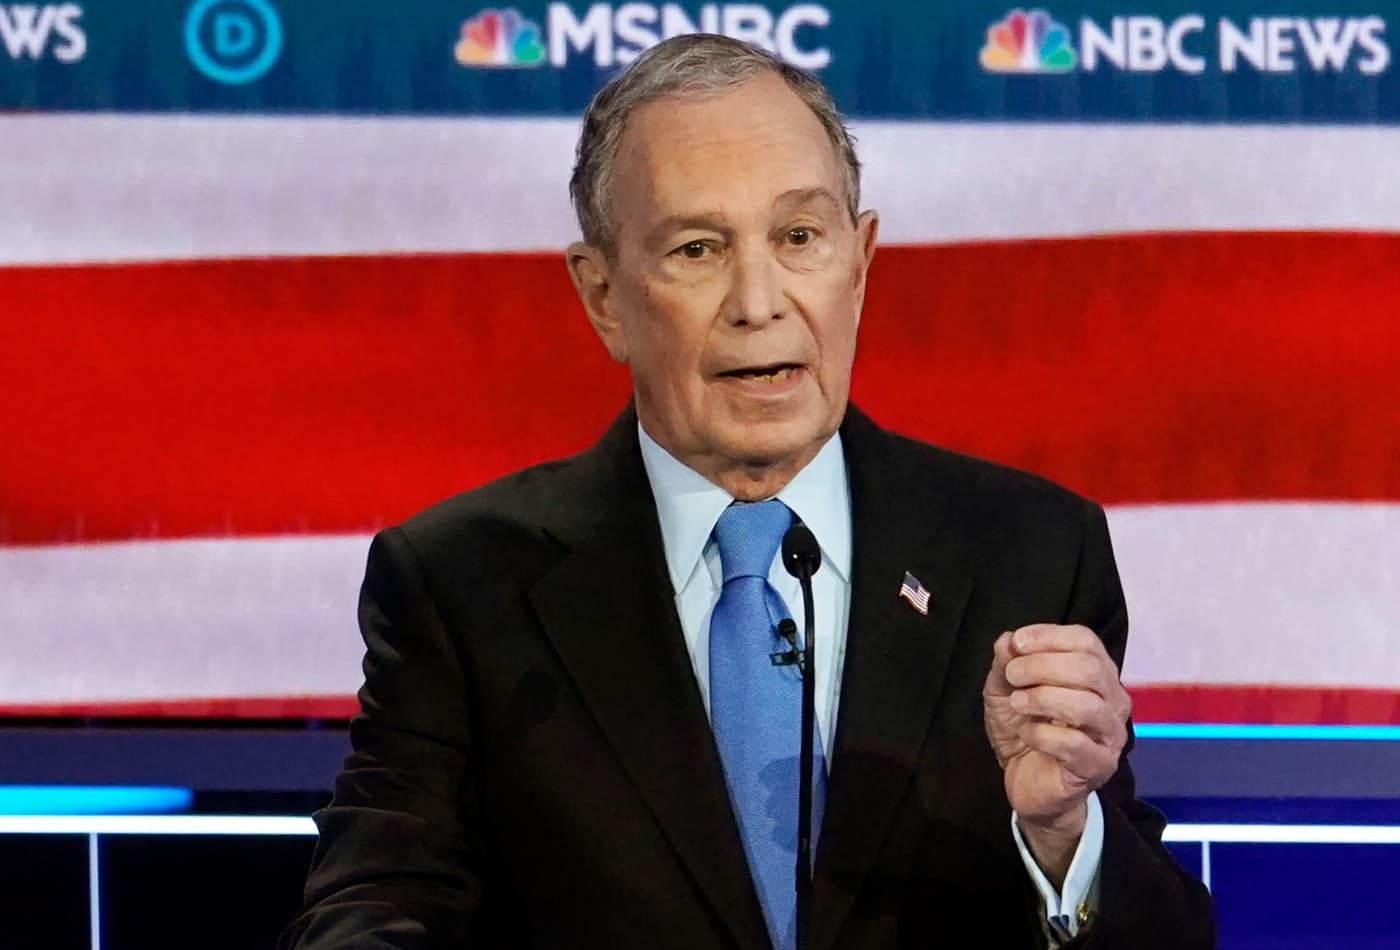 Mike Bloomberg takes a beating at Democratic debate as Elizabeth Warren leads the attack